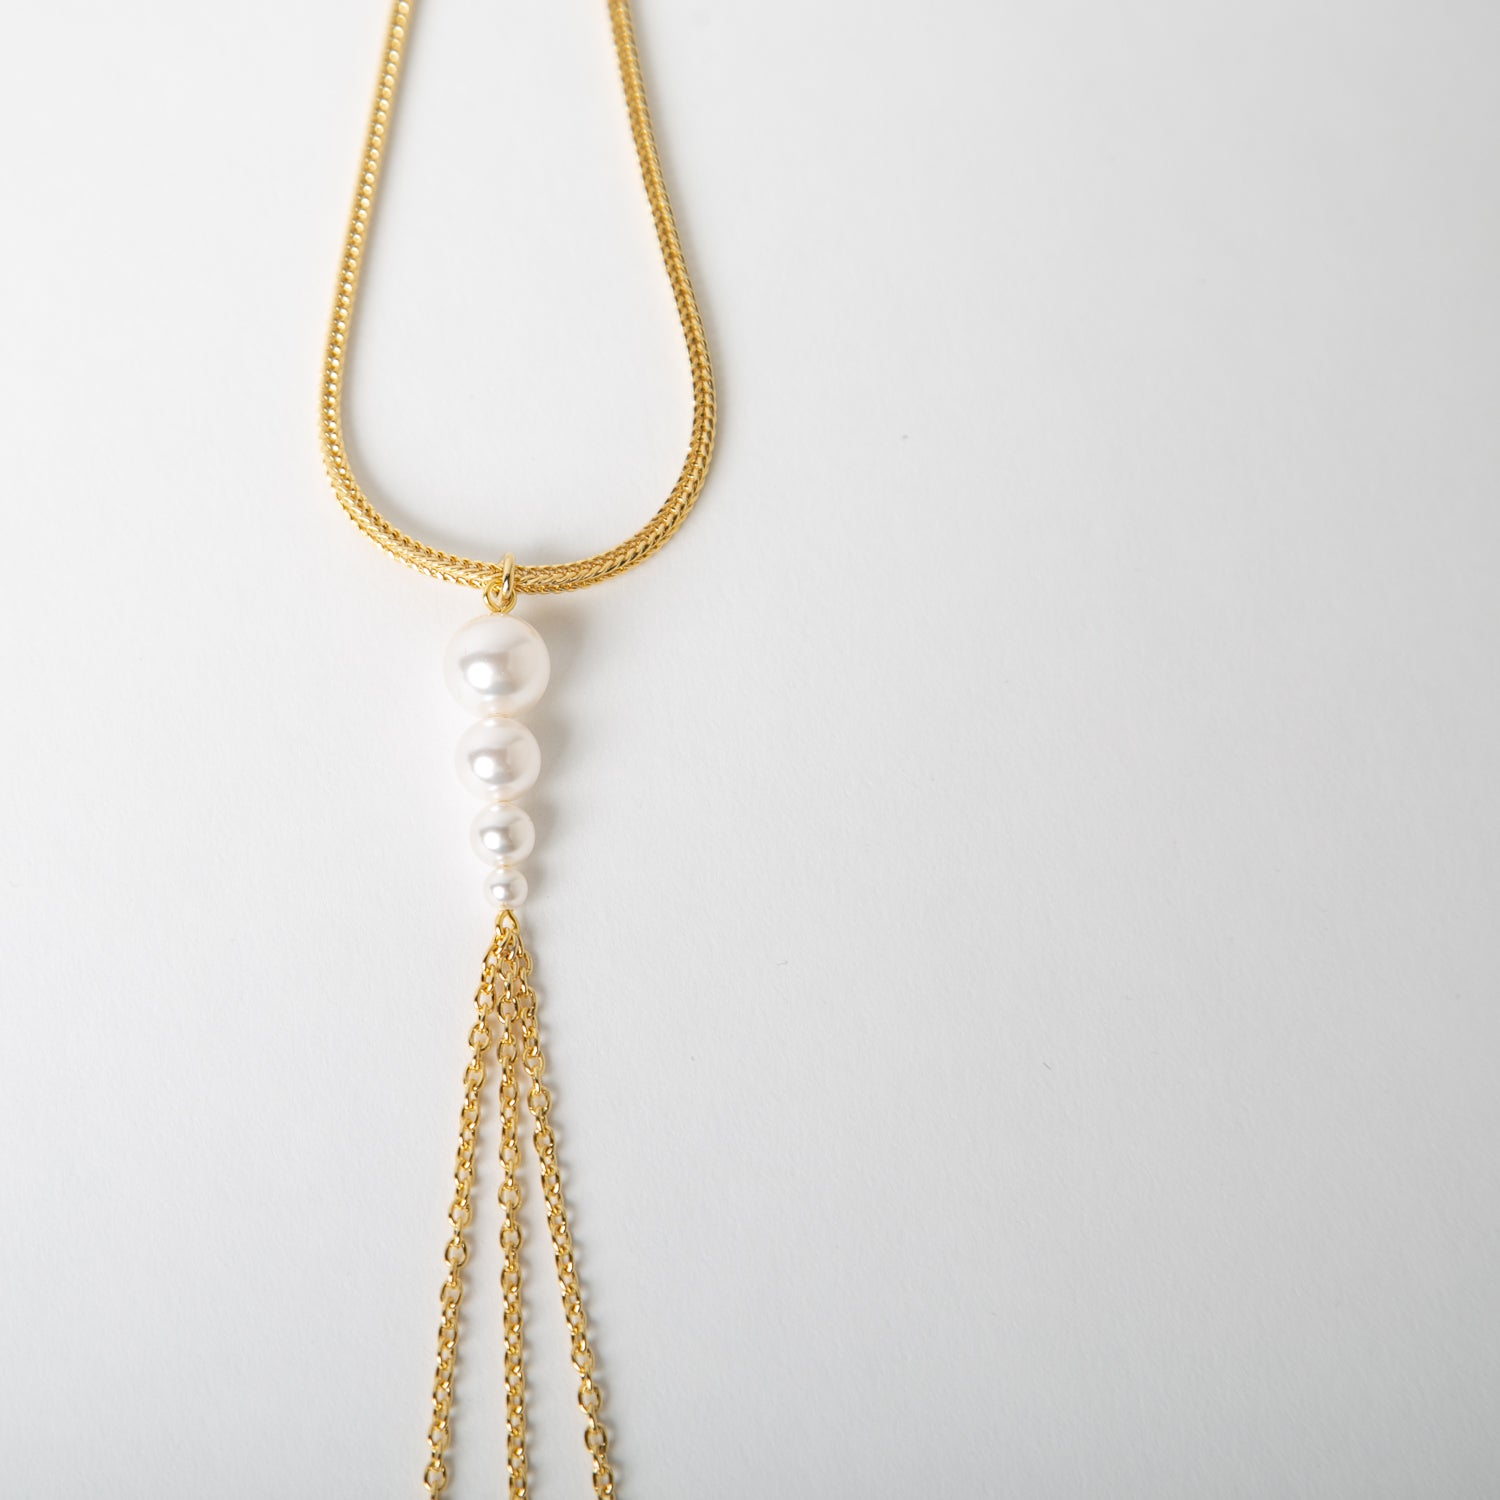 Necklace w/  Long Chain & Pearls